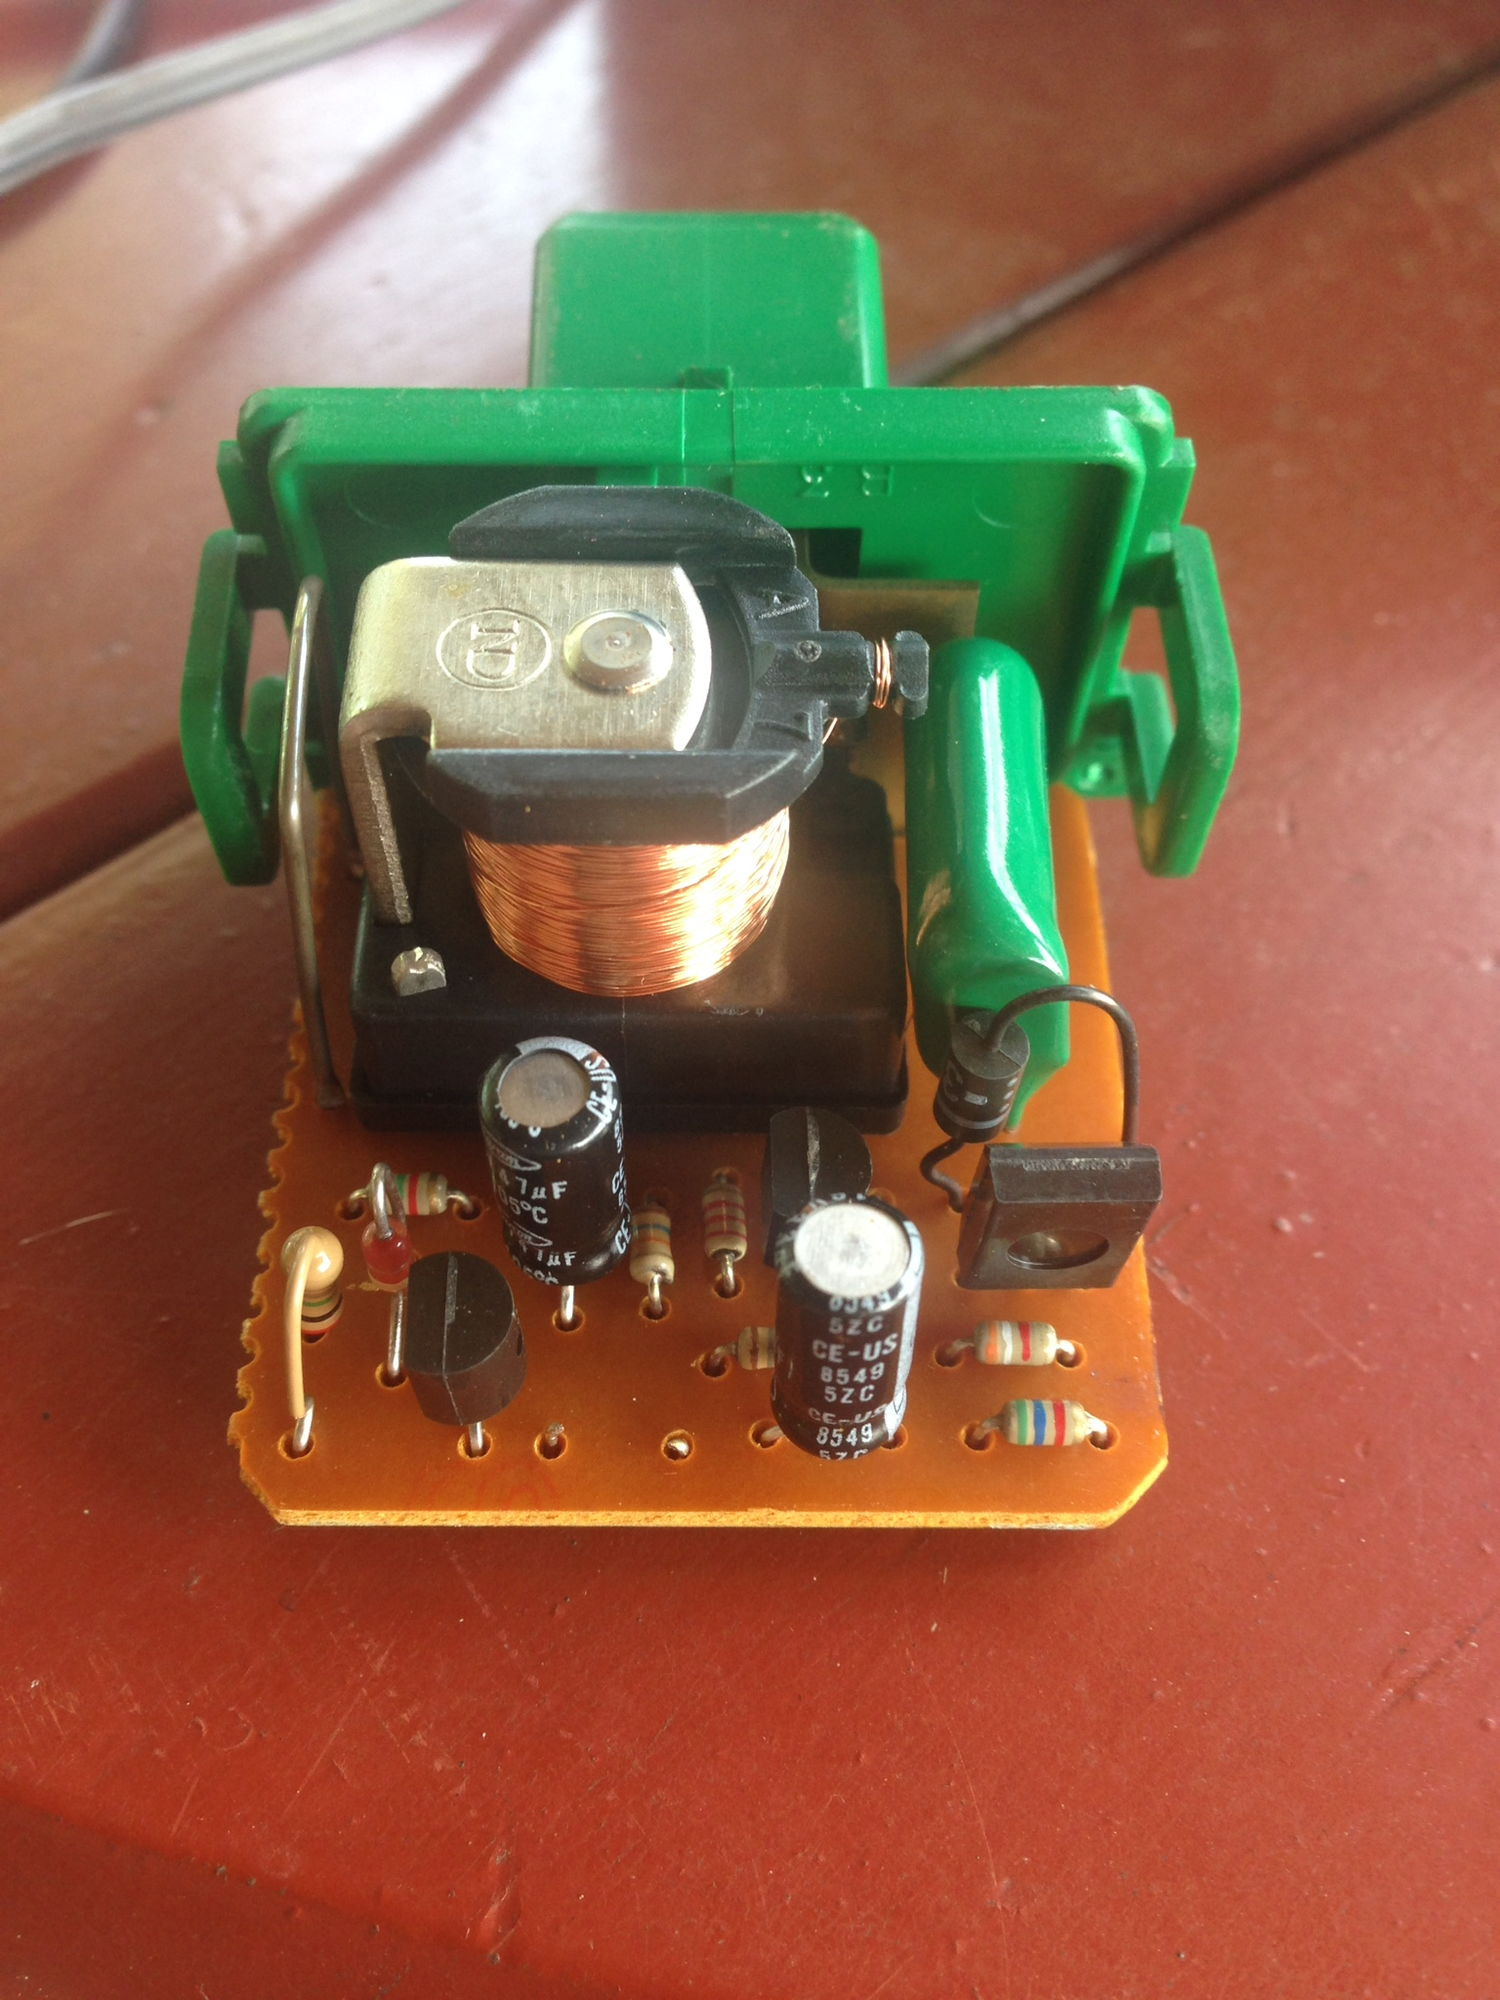 You can remove the bottom center resistor in the factory relay as shown here to stop the hyper flashing